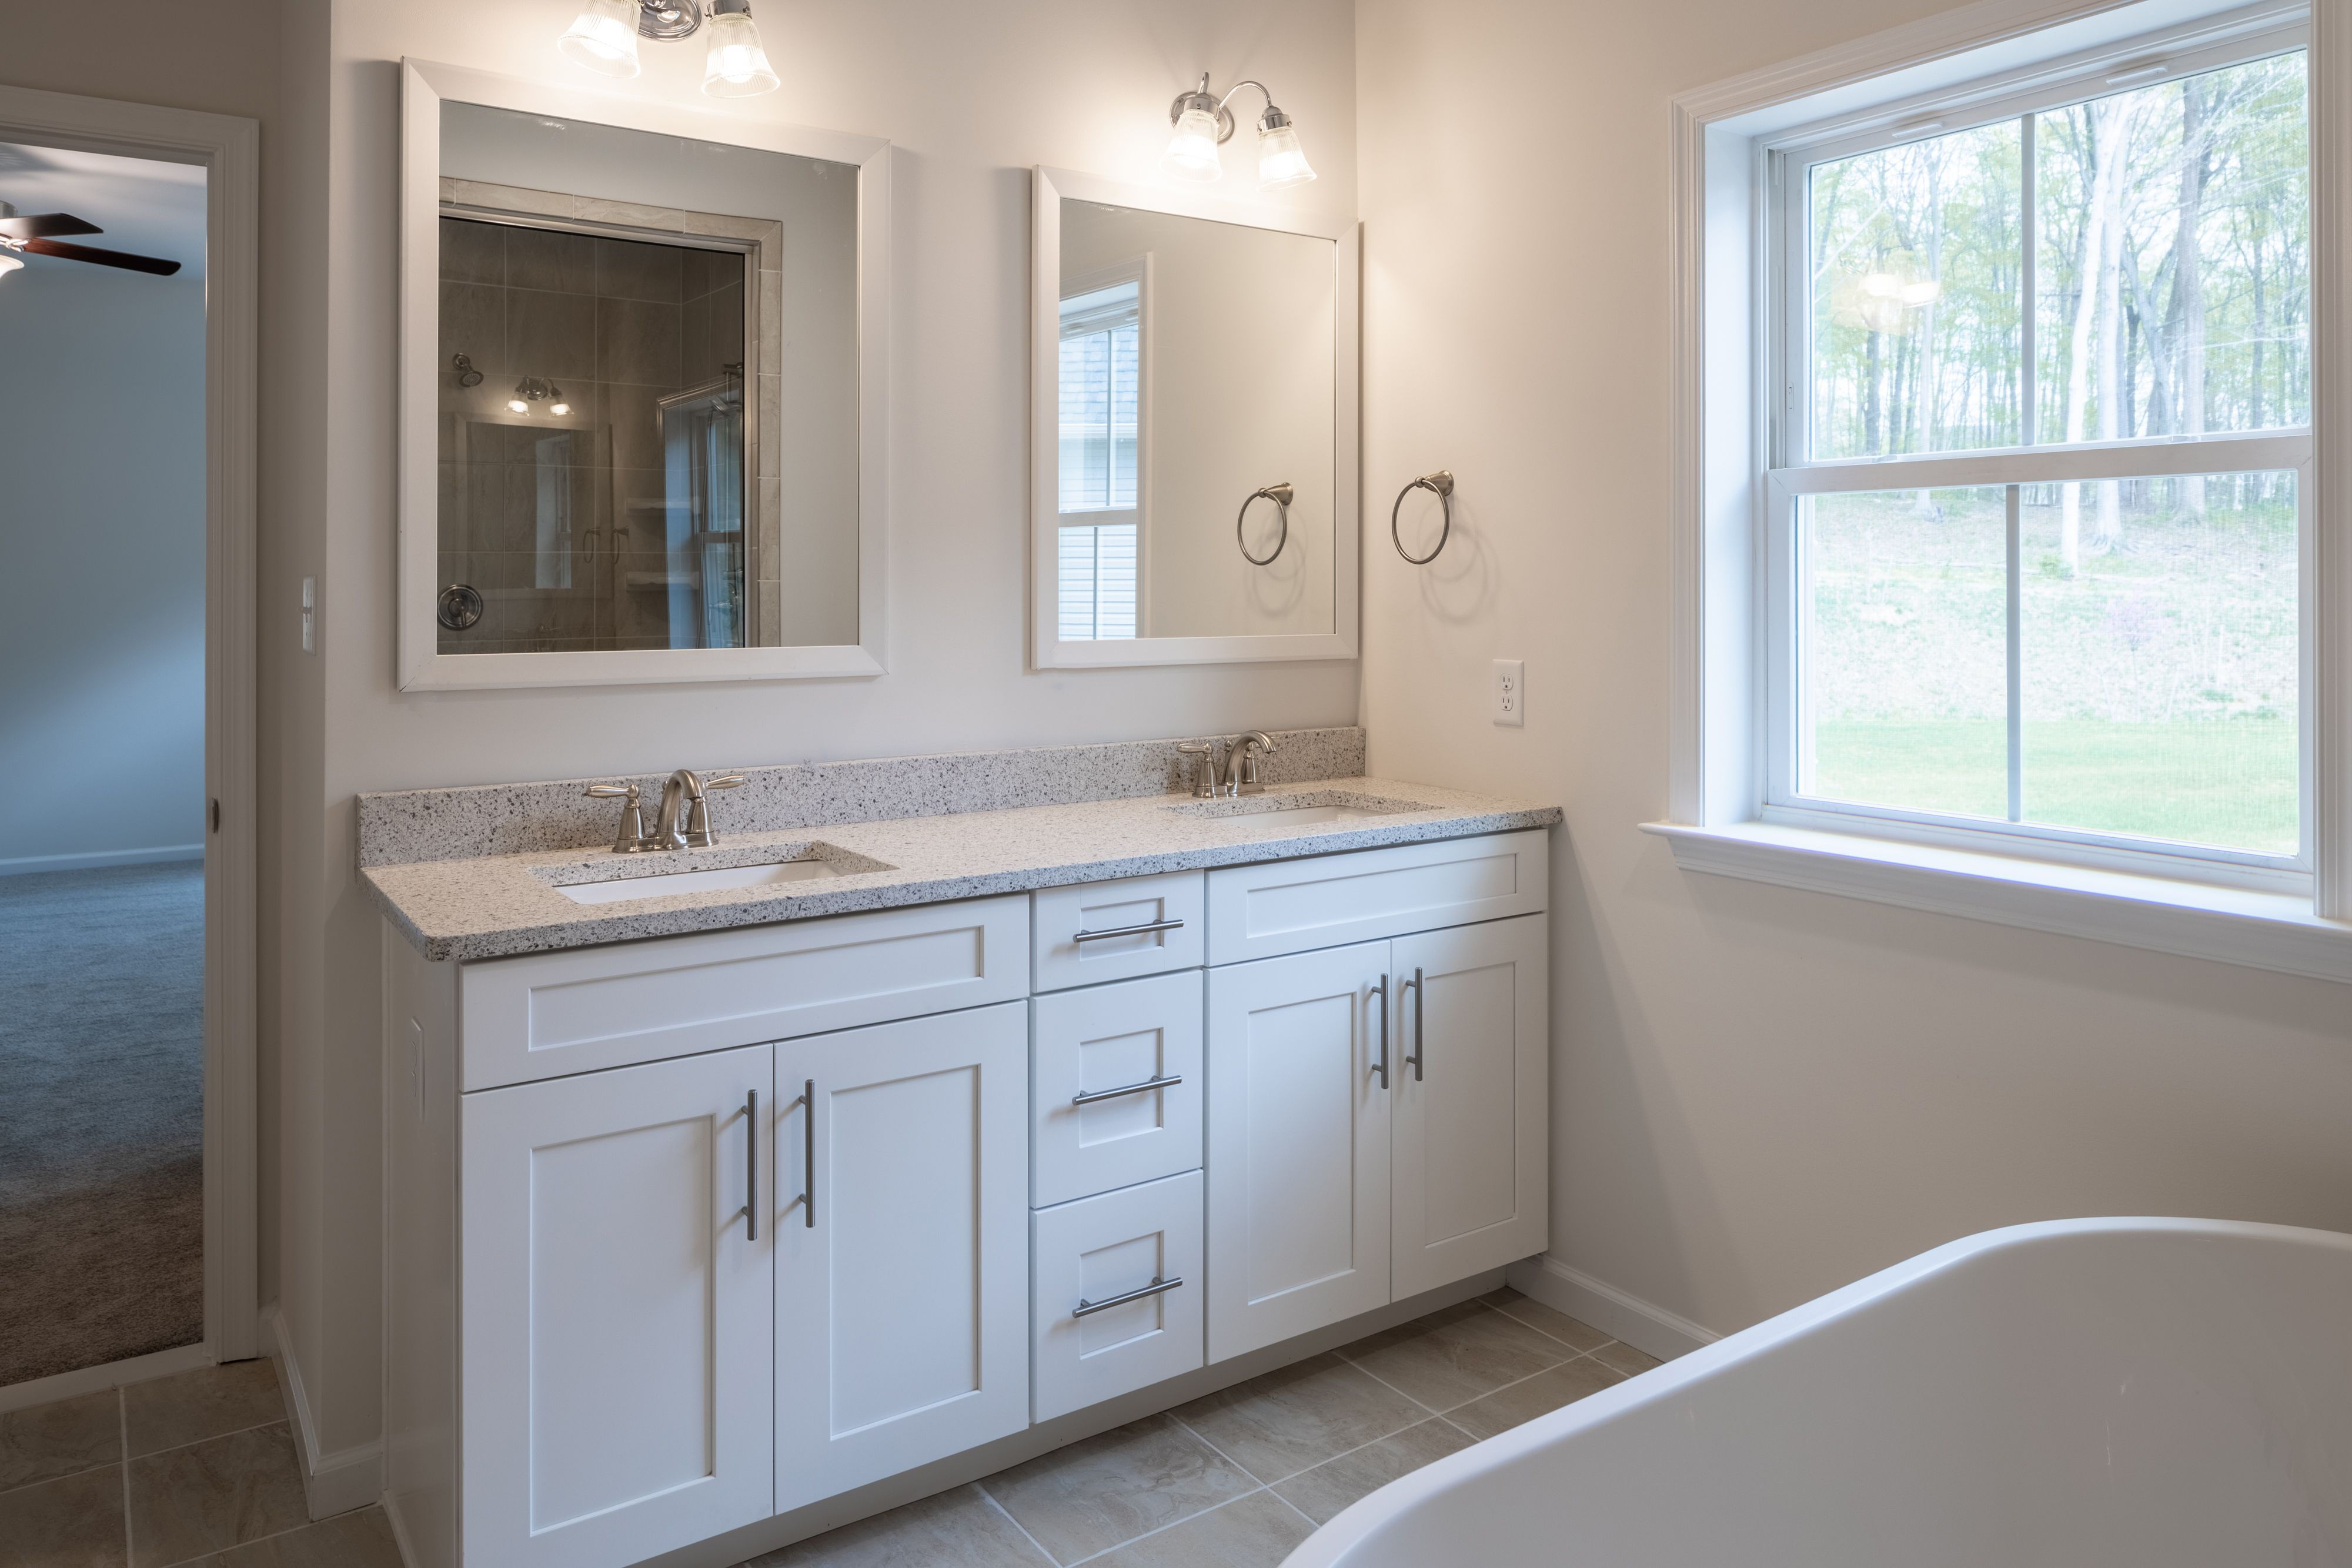 Bathroom featured in the Augusta Heritage By Keystone Custom Homes in York, PA